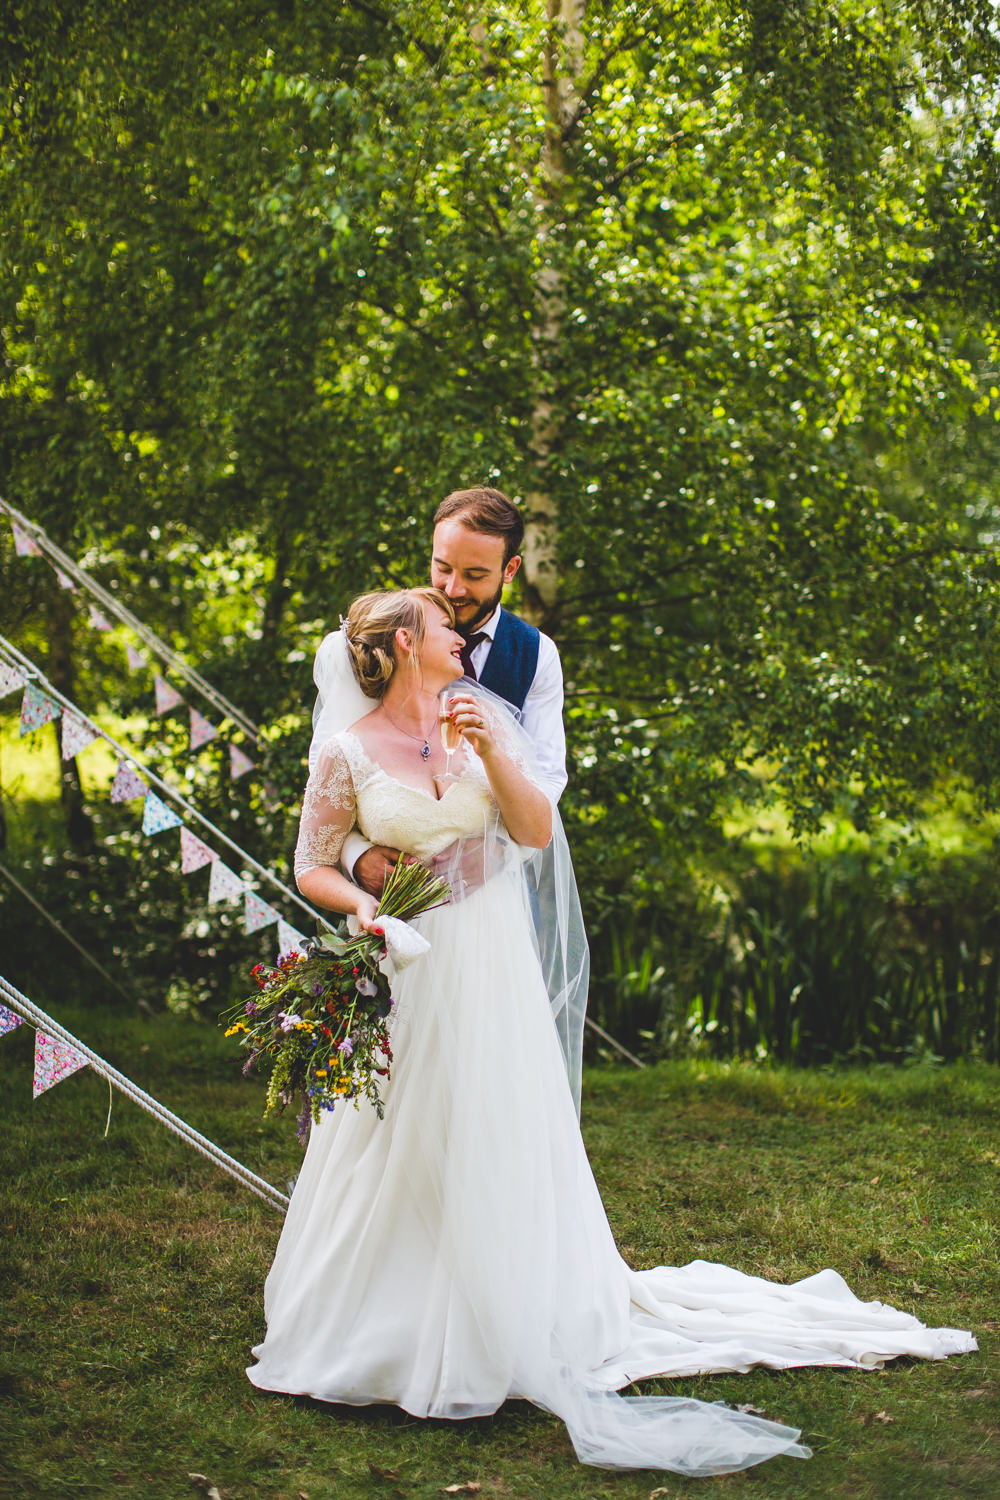 Bride Bridal Dress Gown V Neck Lace Sleeve Layered Veil Waistcoat Tweed Groom Wise Wedding Venue Livvy Hukins Photography